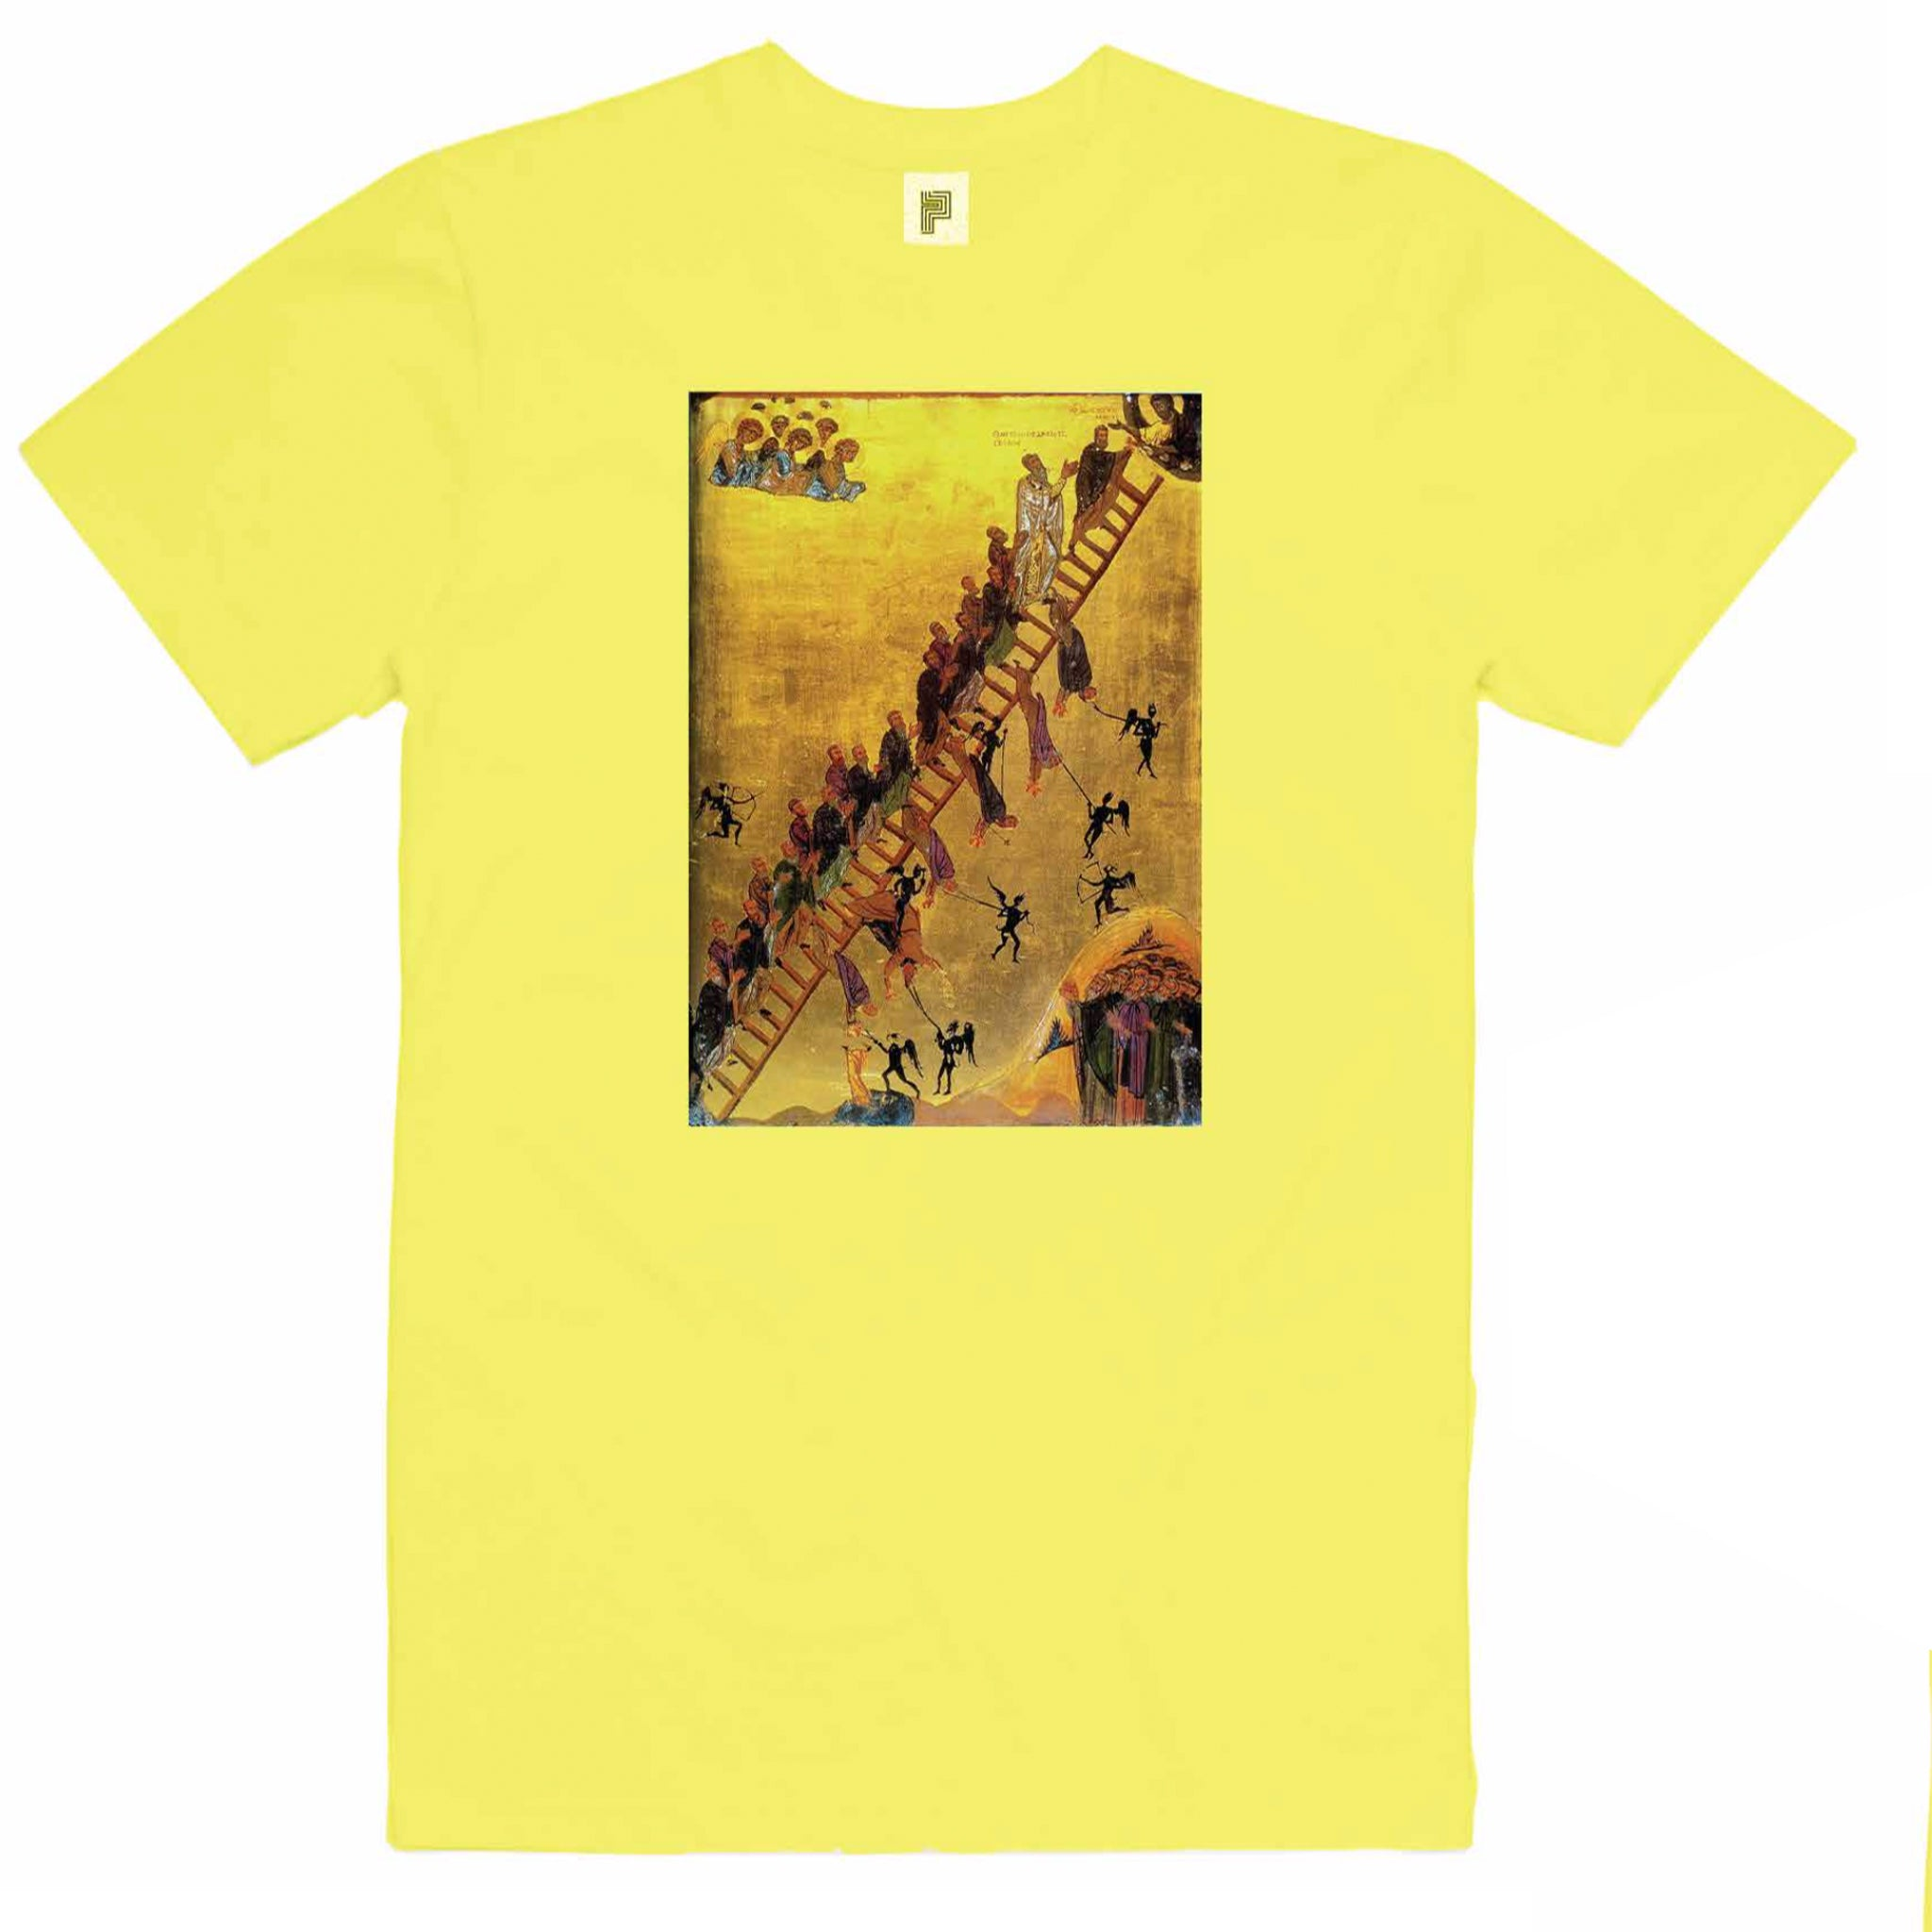 LADDER OF ASCENT T-SHIRT